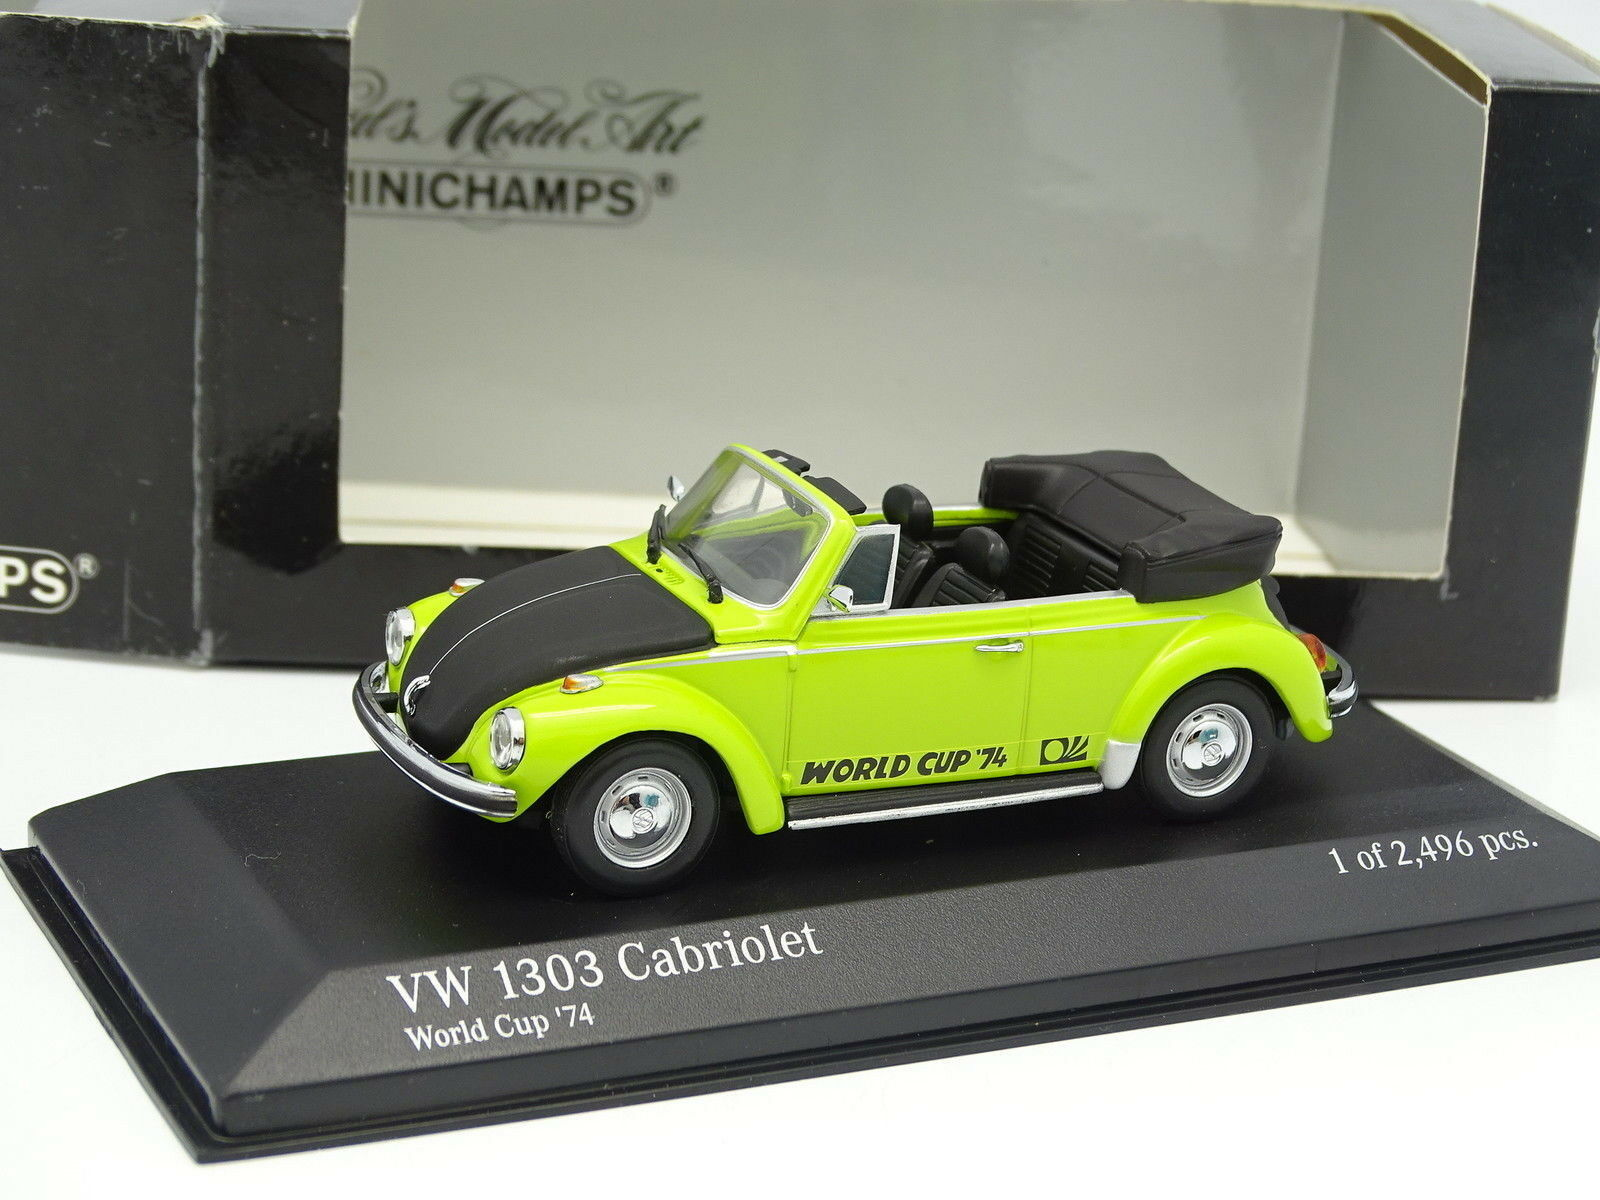 Minichamps 1 43 - VW 1303 Cabriolet greene World Cup Cup Cup 1974 2e266b